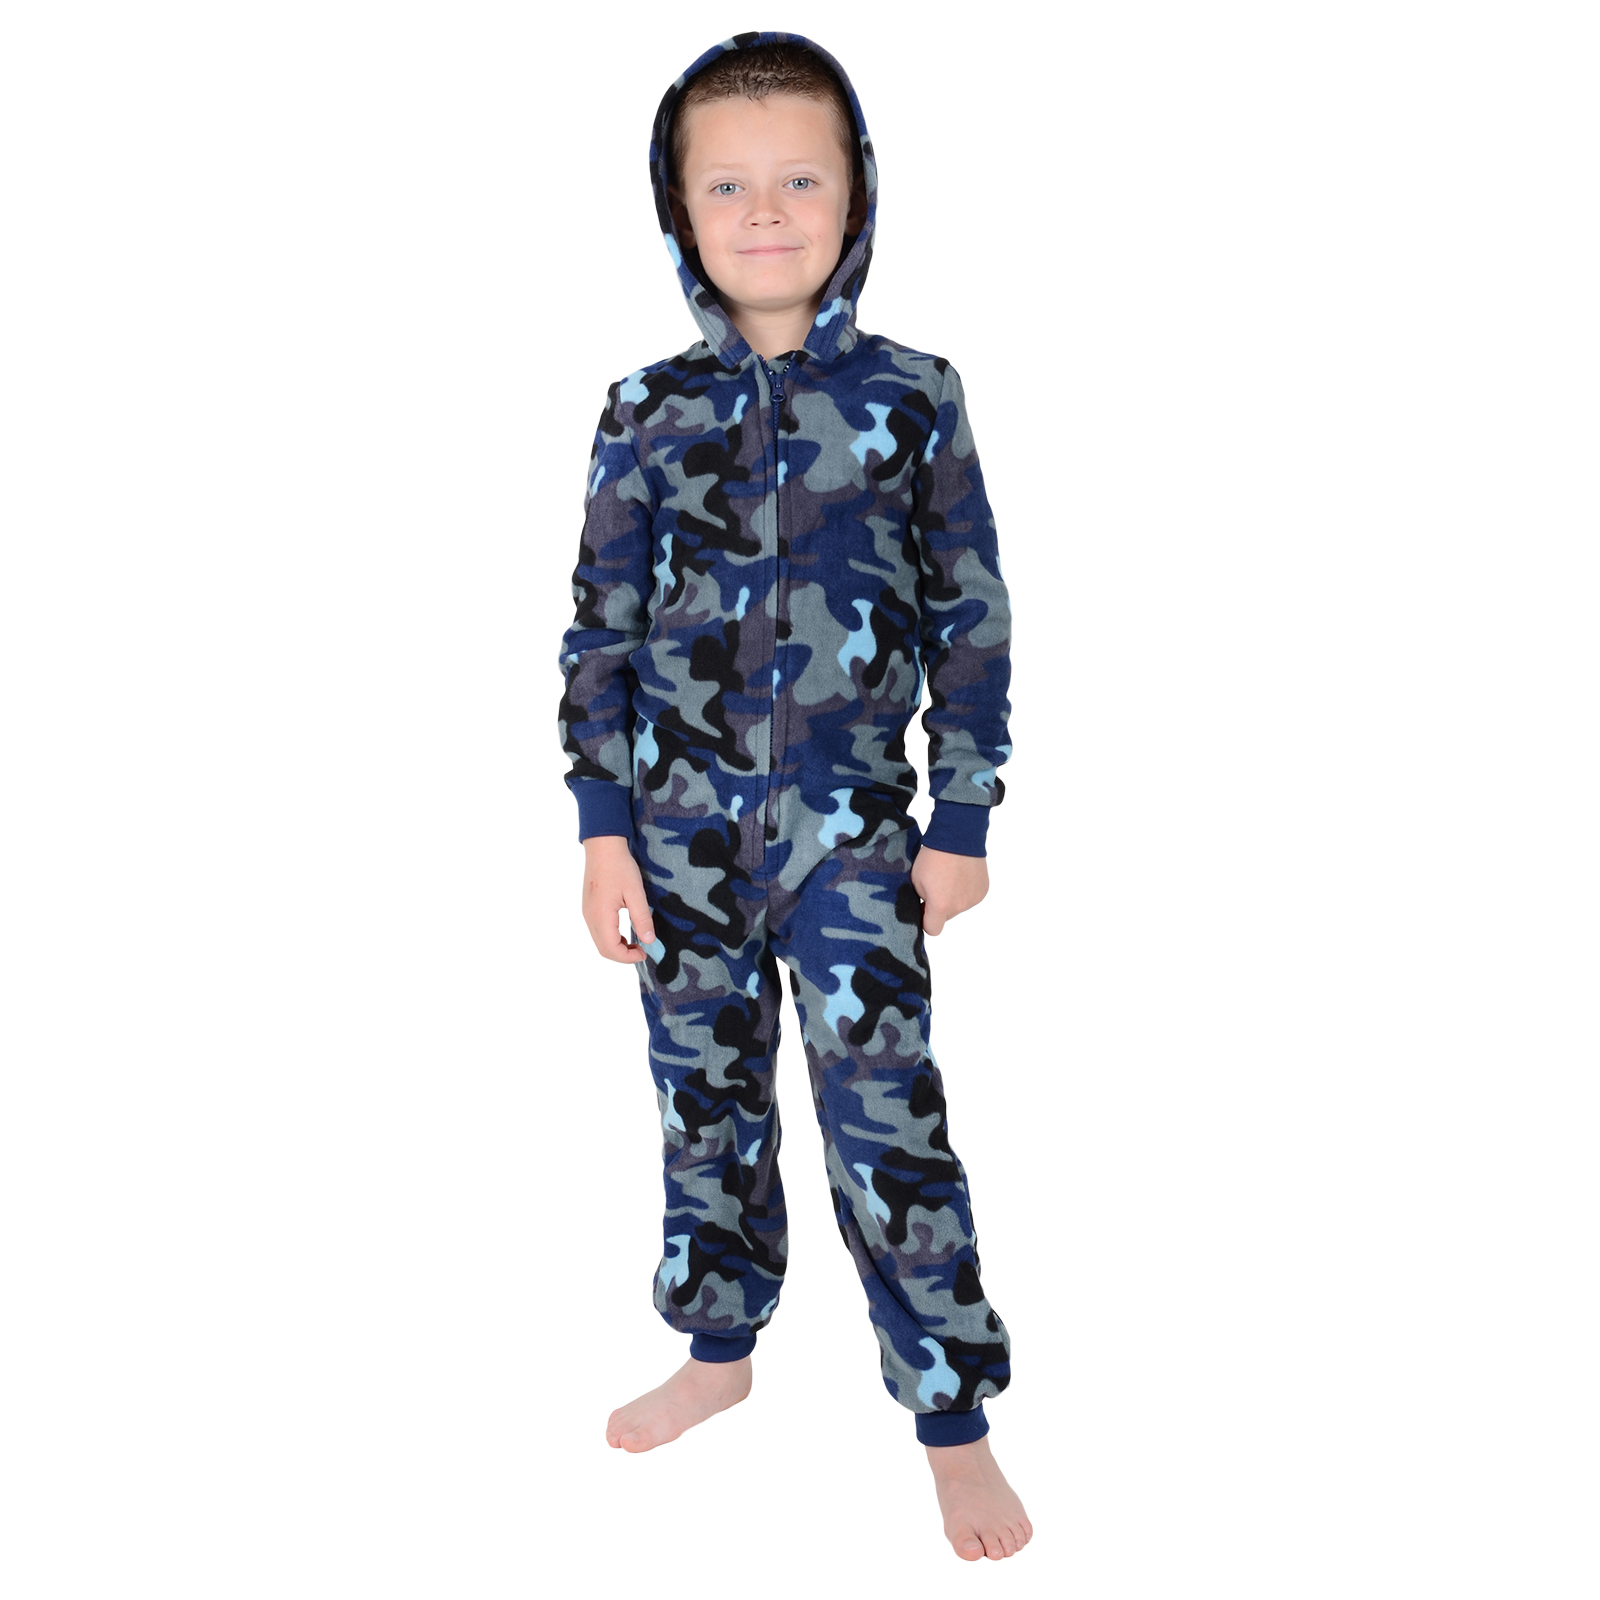 Find great deals on eBay for boys onesies. Shop with confidence.